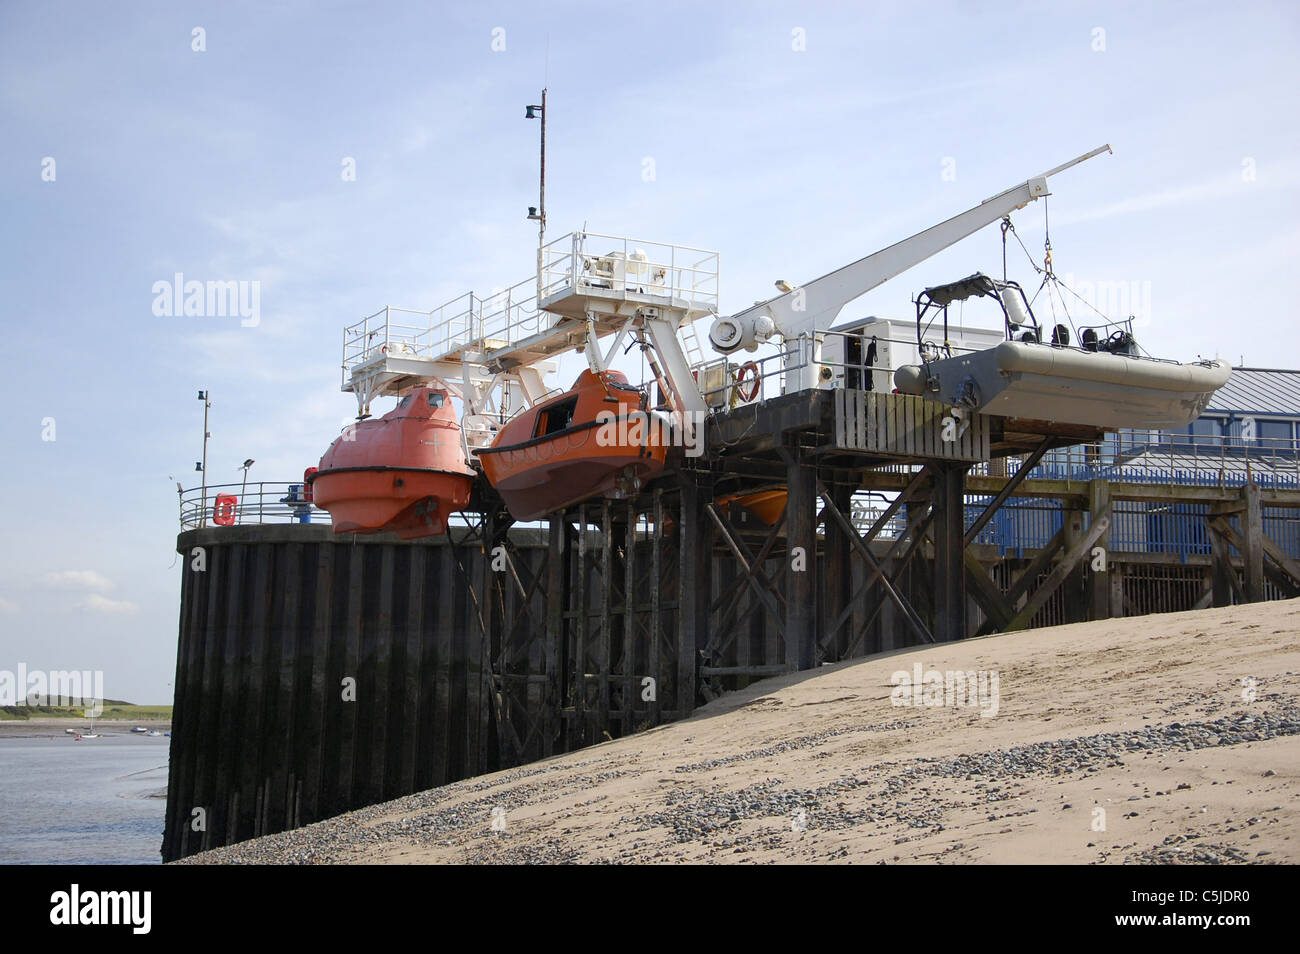 The boat launching station at Fleetwood with boats secured on davits and cables Stock Photo